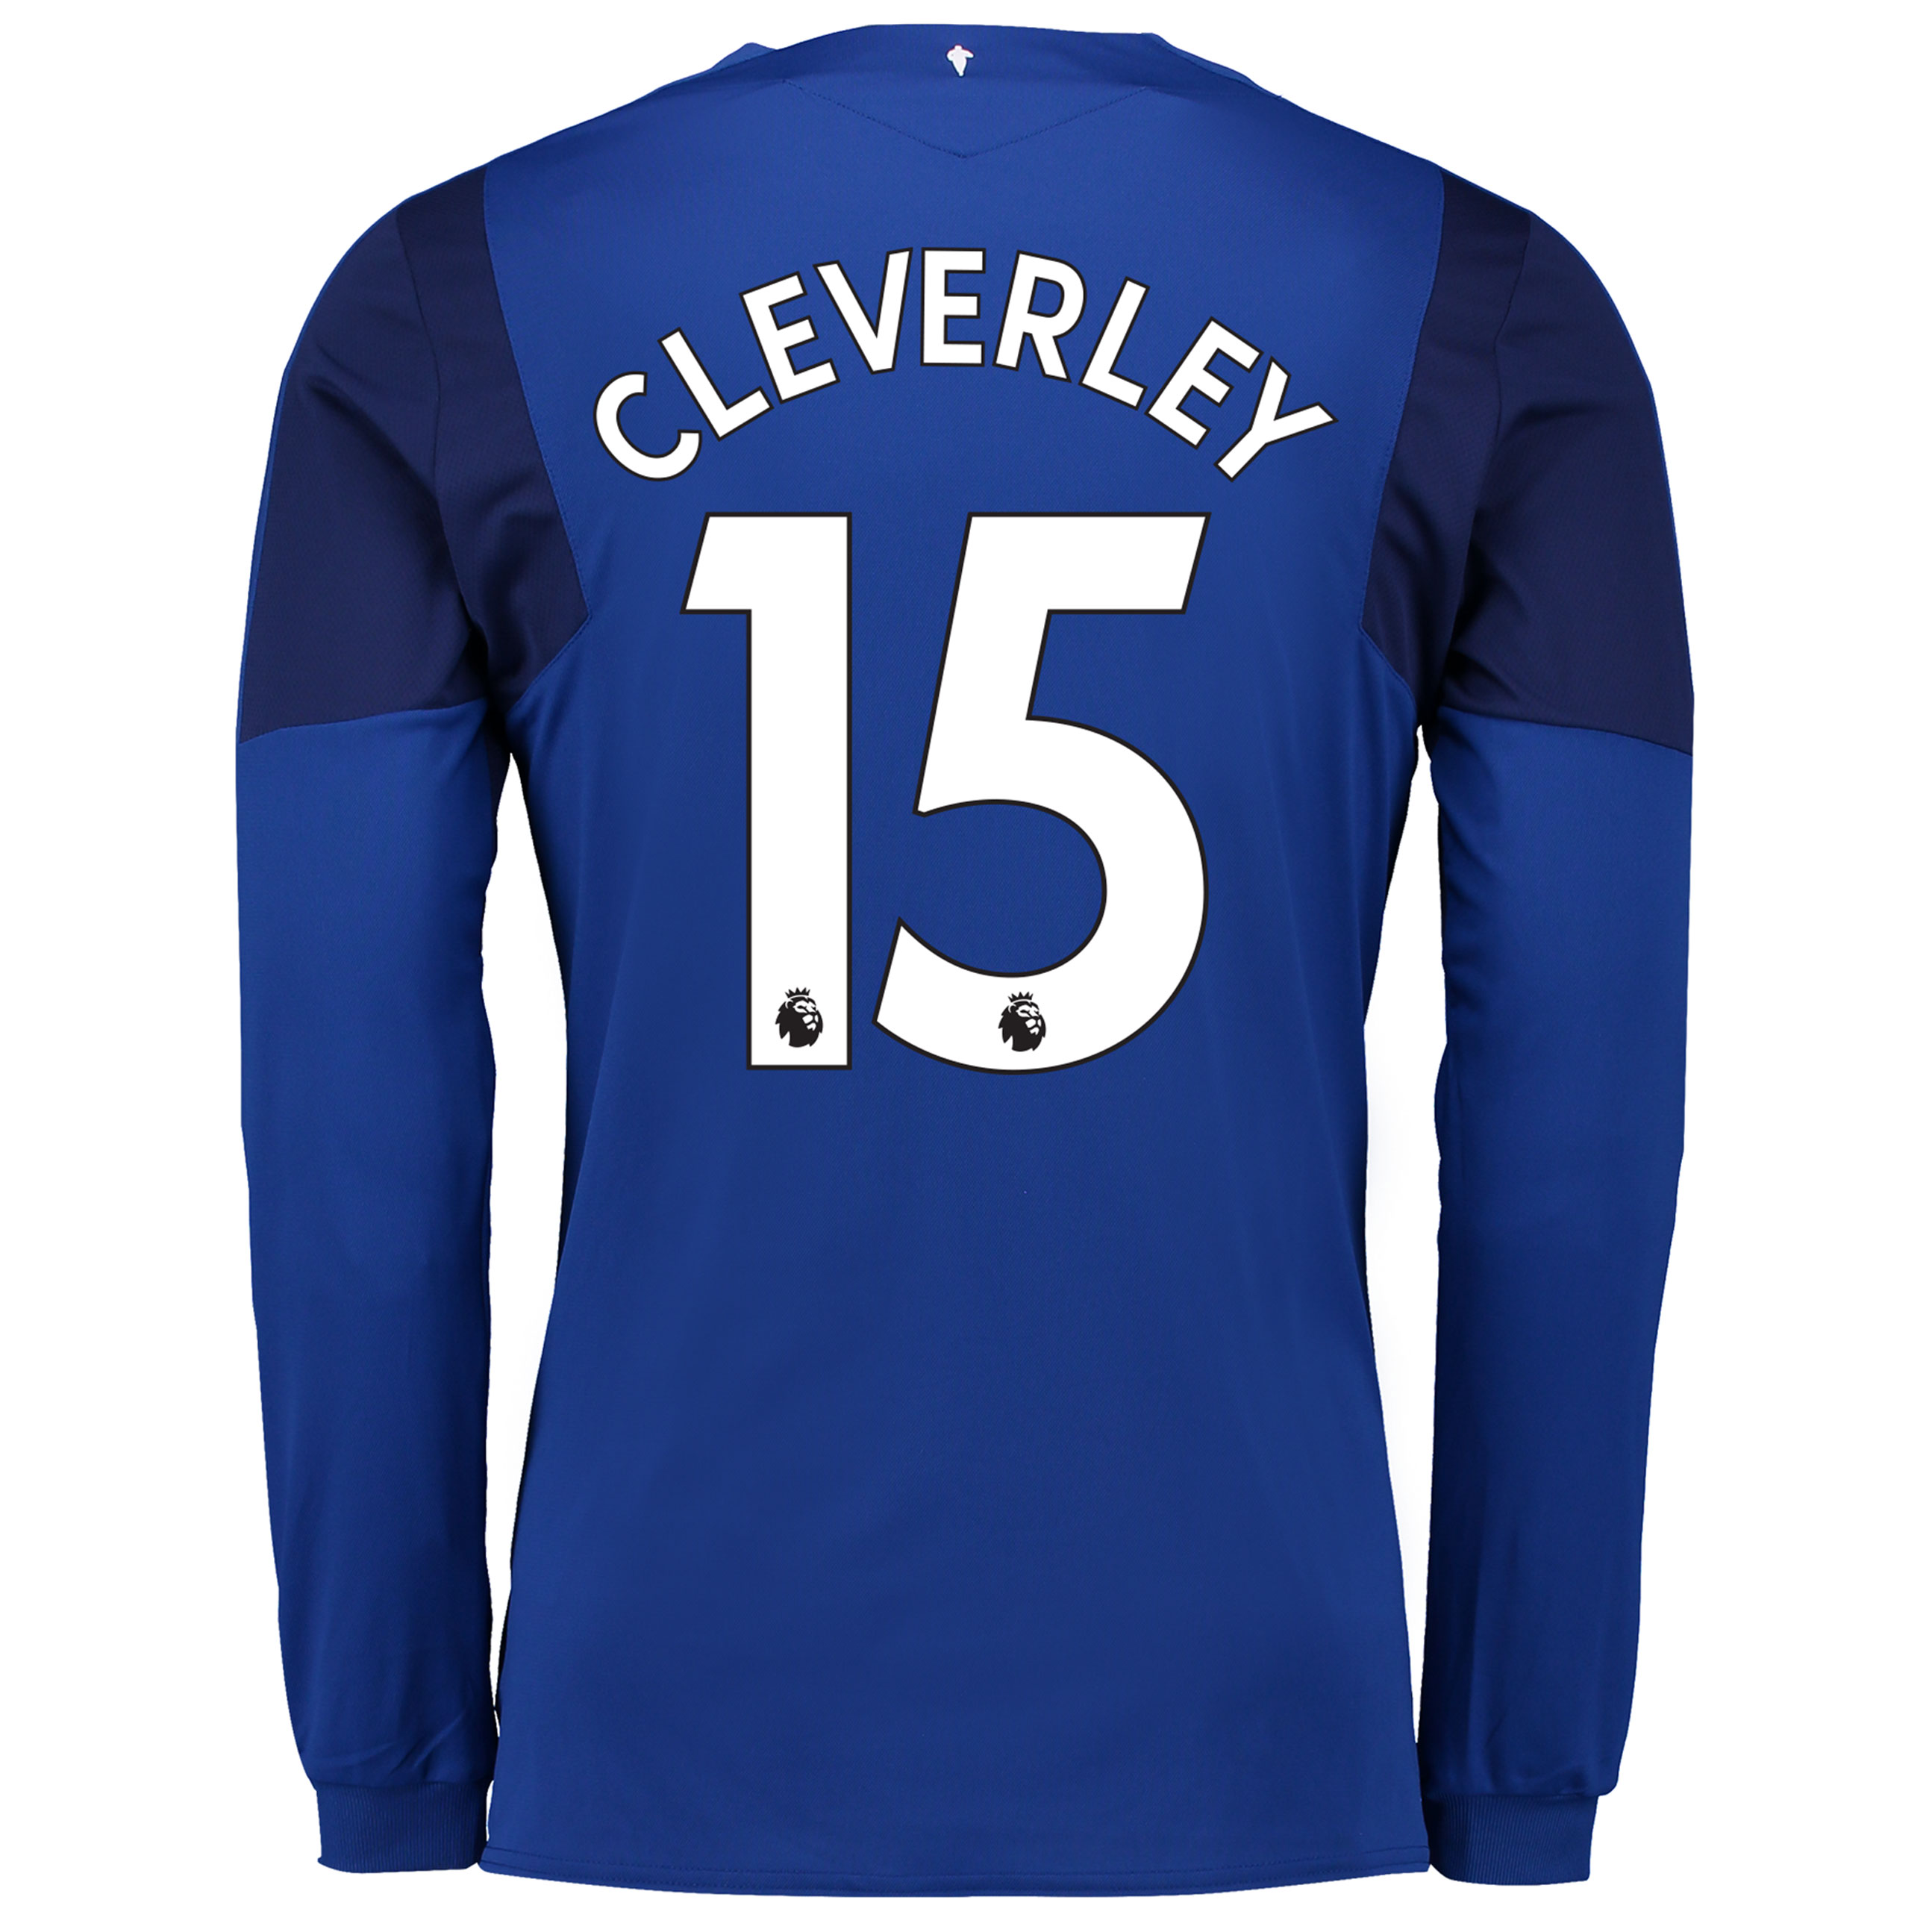 Everton Home Shirt 2017/18 - Long Sleeved with Cleverley 15 printing